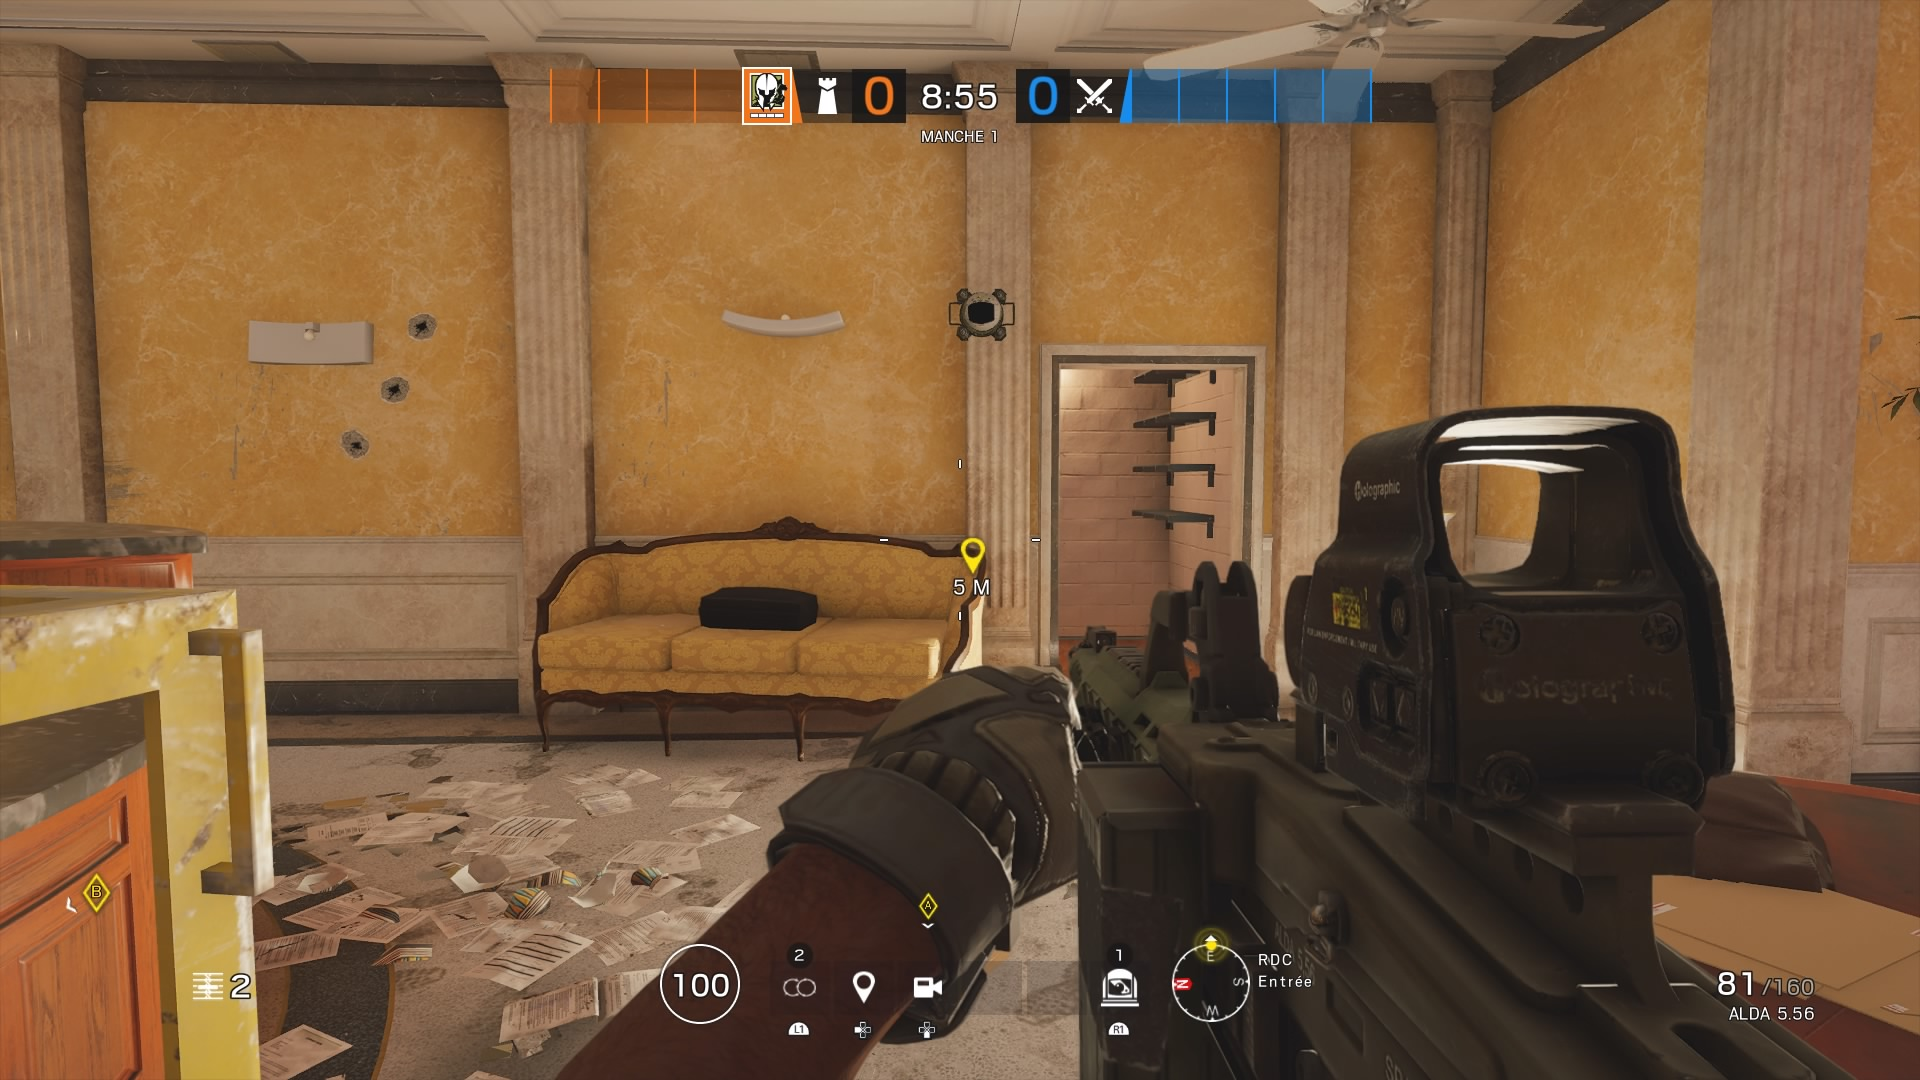 tom_clancy_s_rainbow_six_r_siege_20190717084919.jpg